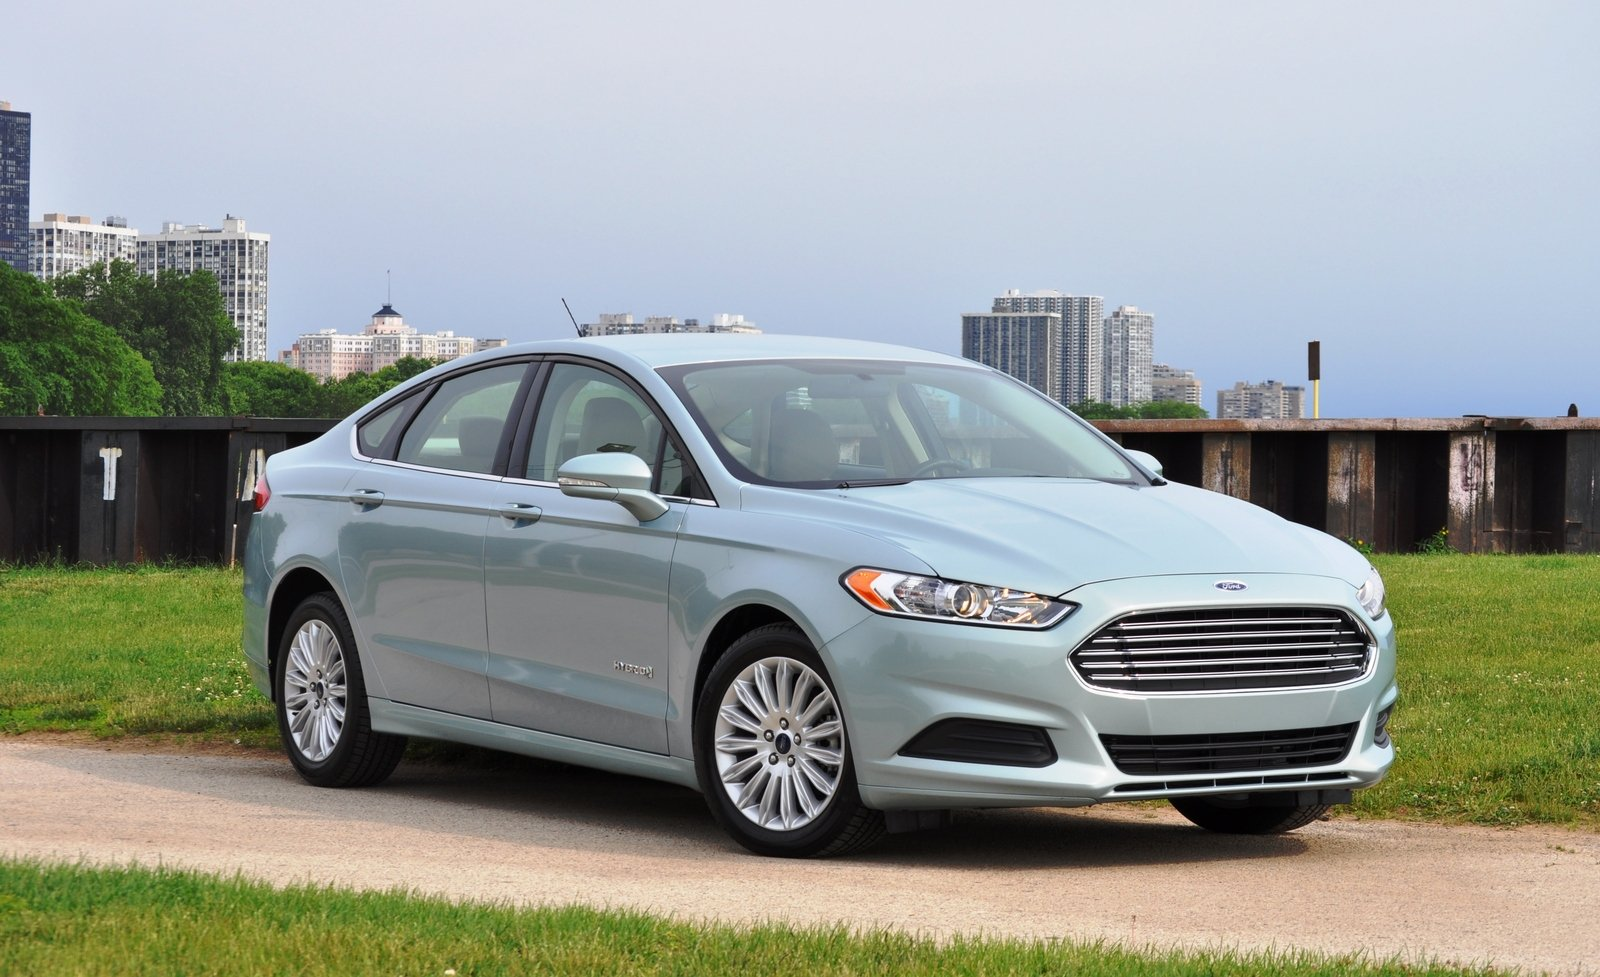 2014 ford fusion hybrid picture 512557 car review top speed. Cars Review. Best American Auto & Cars Review